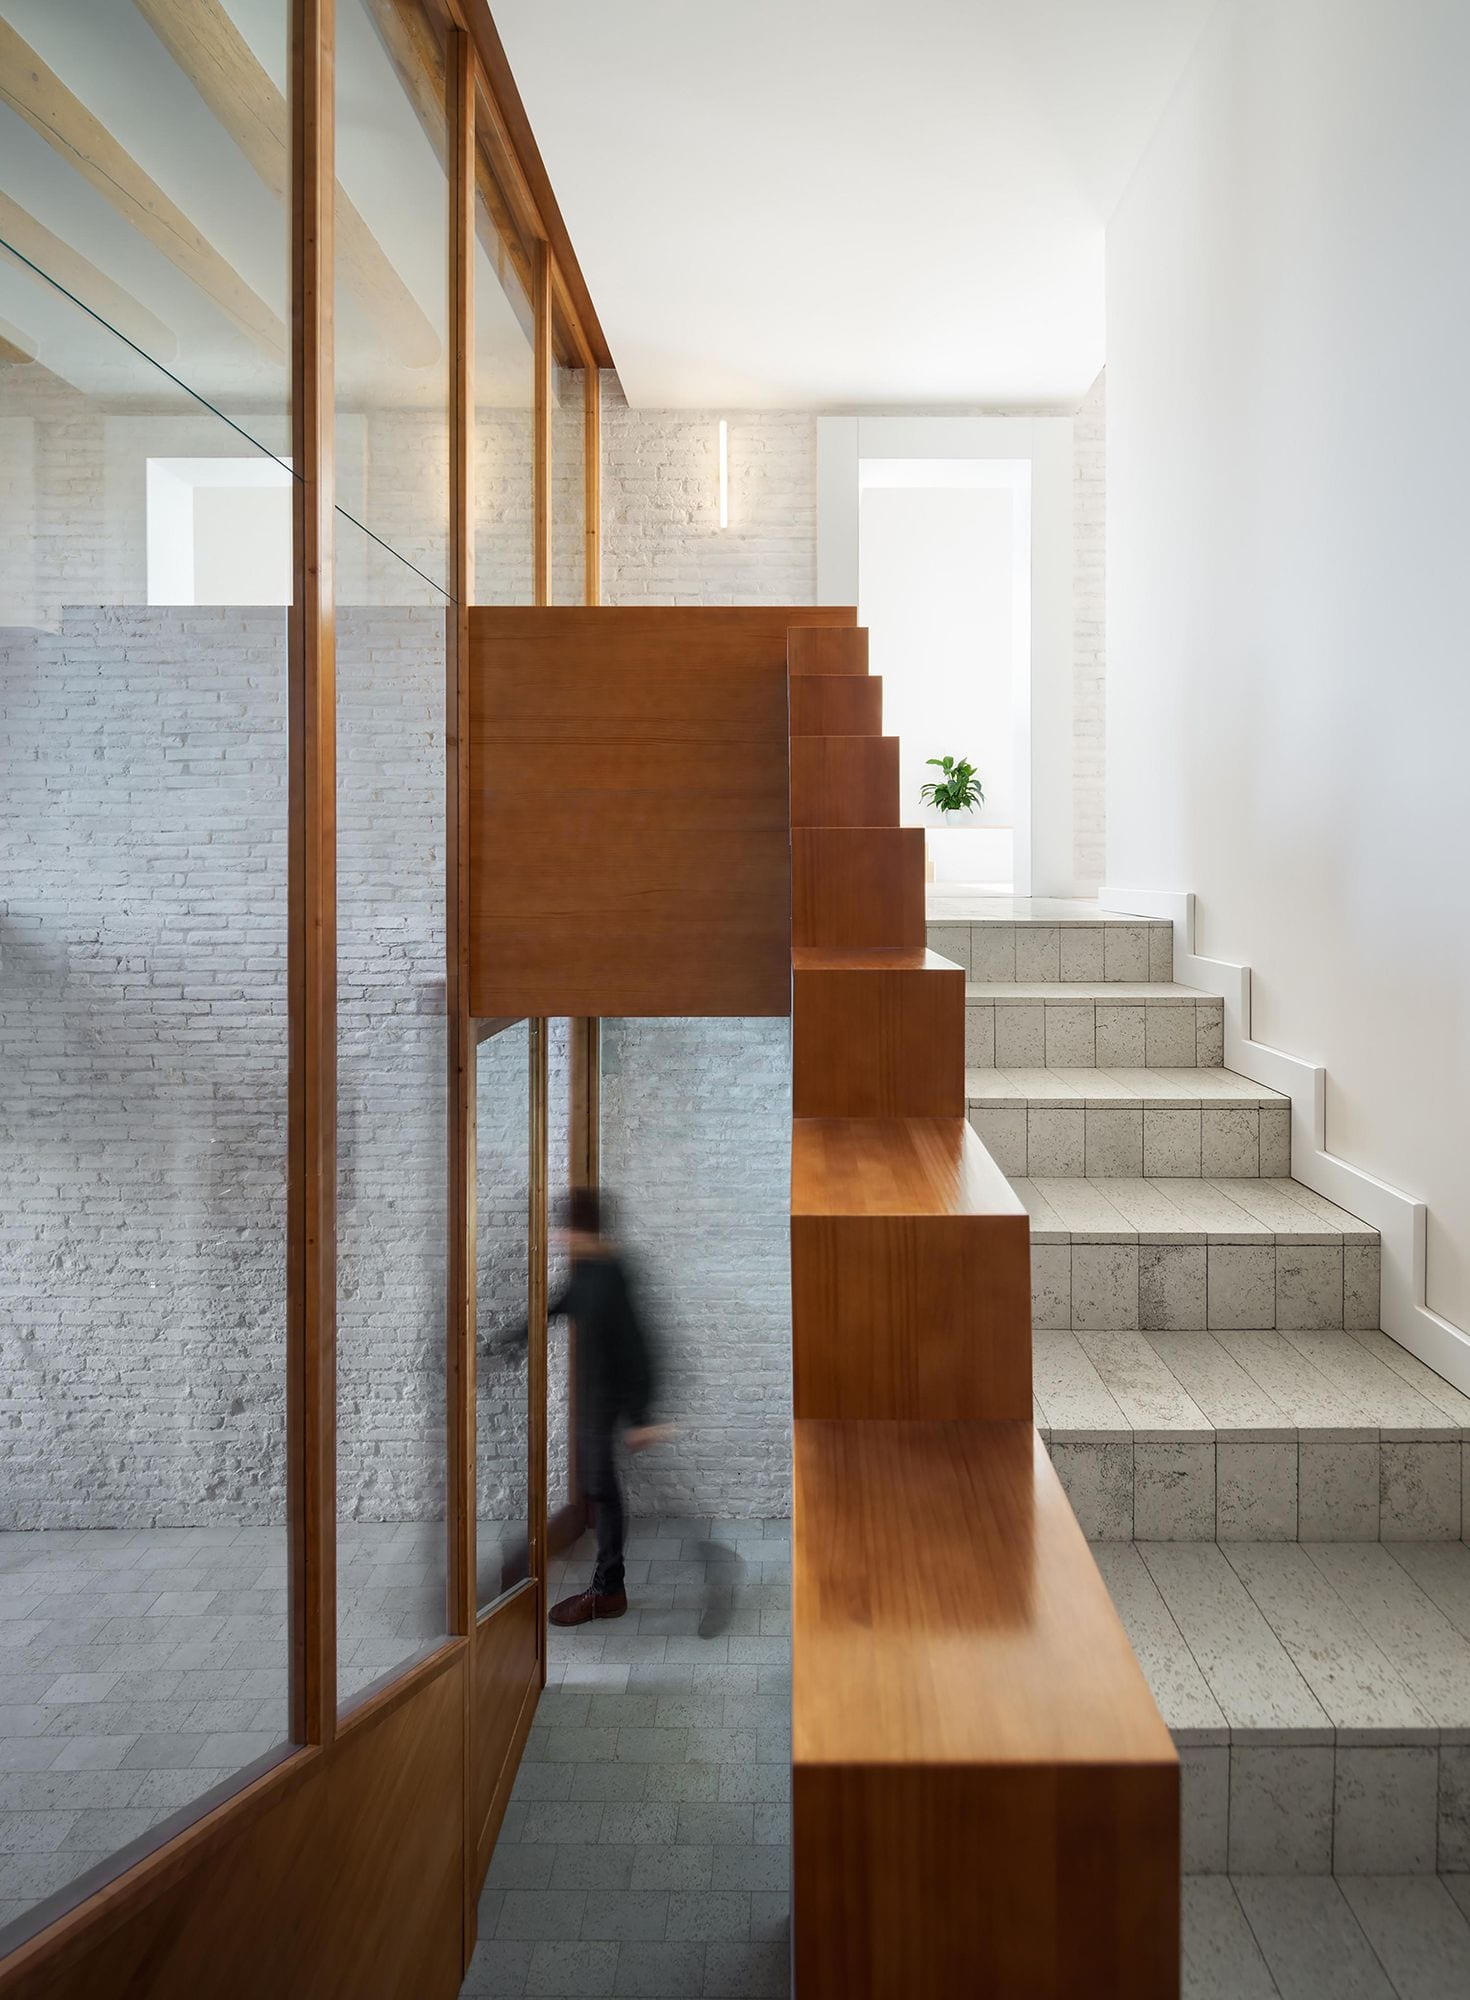 Cal Jordi & Anna House Renovation in Spain By Hiha Studio | Yellowtrace